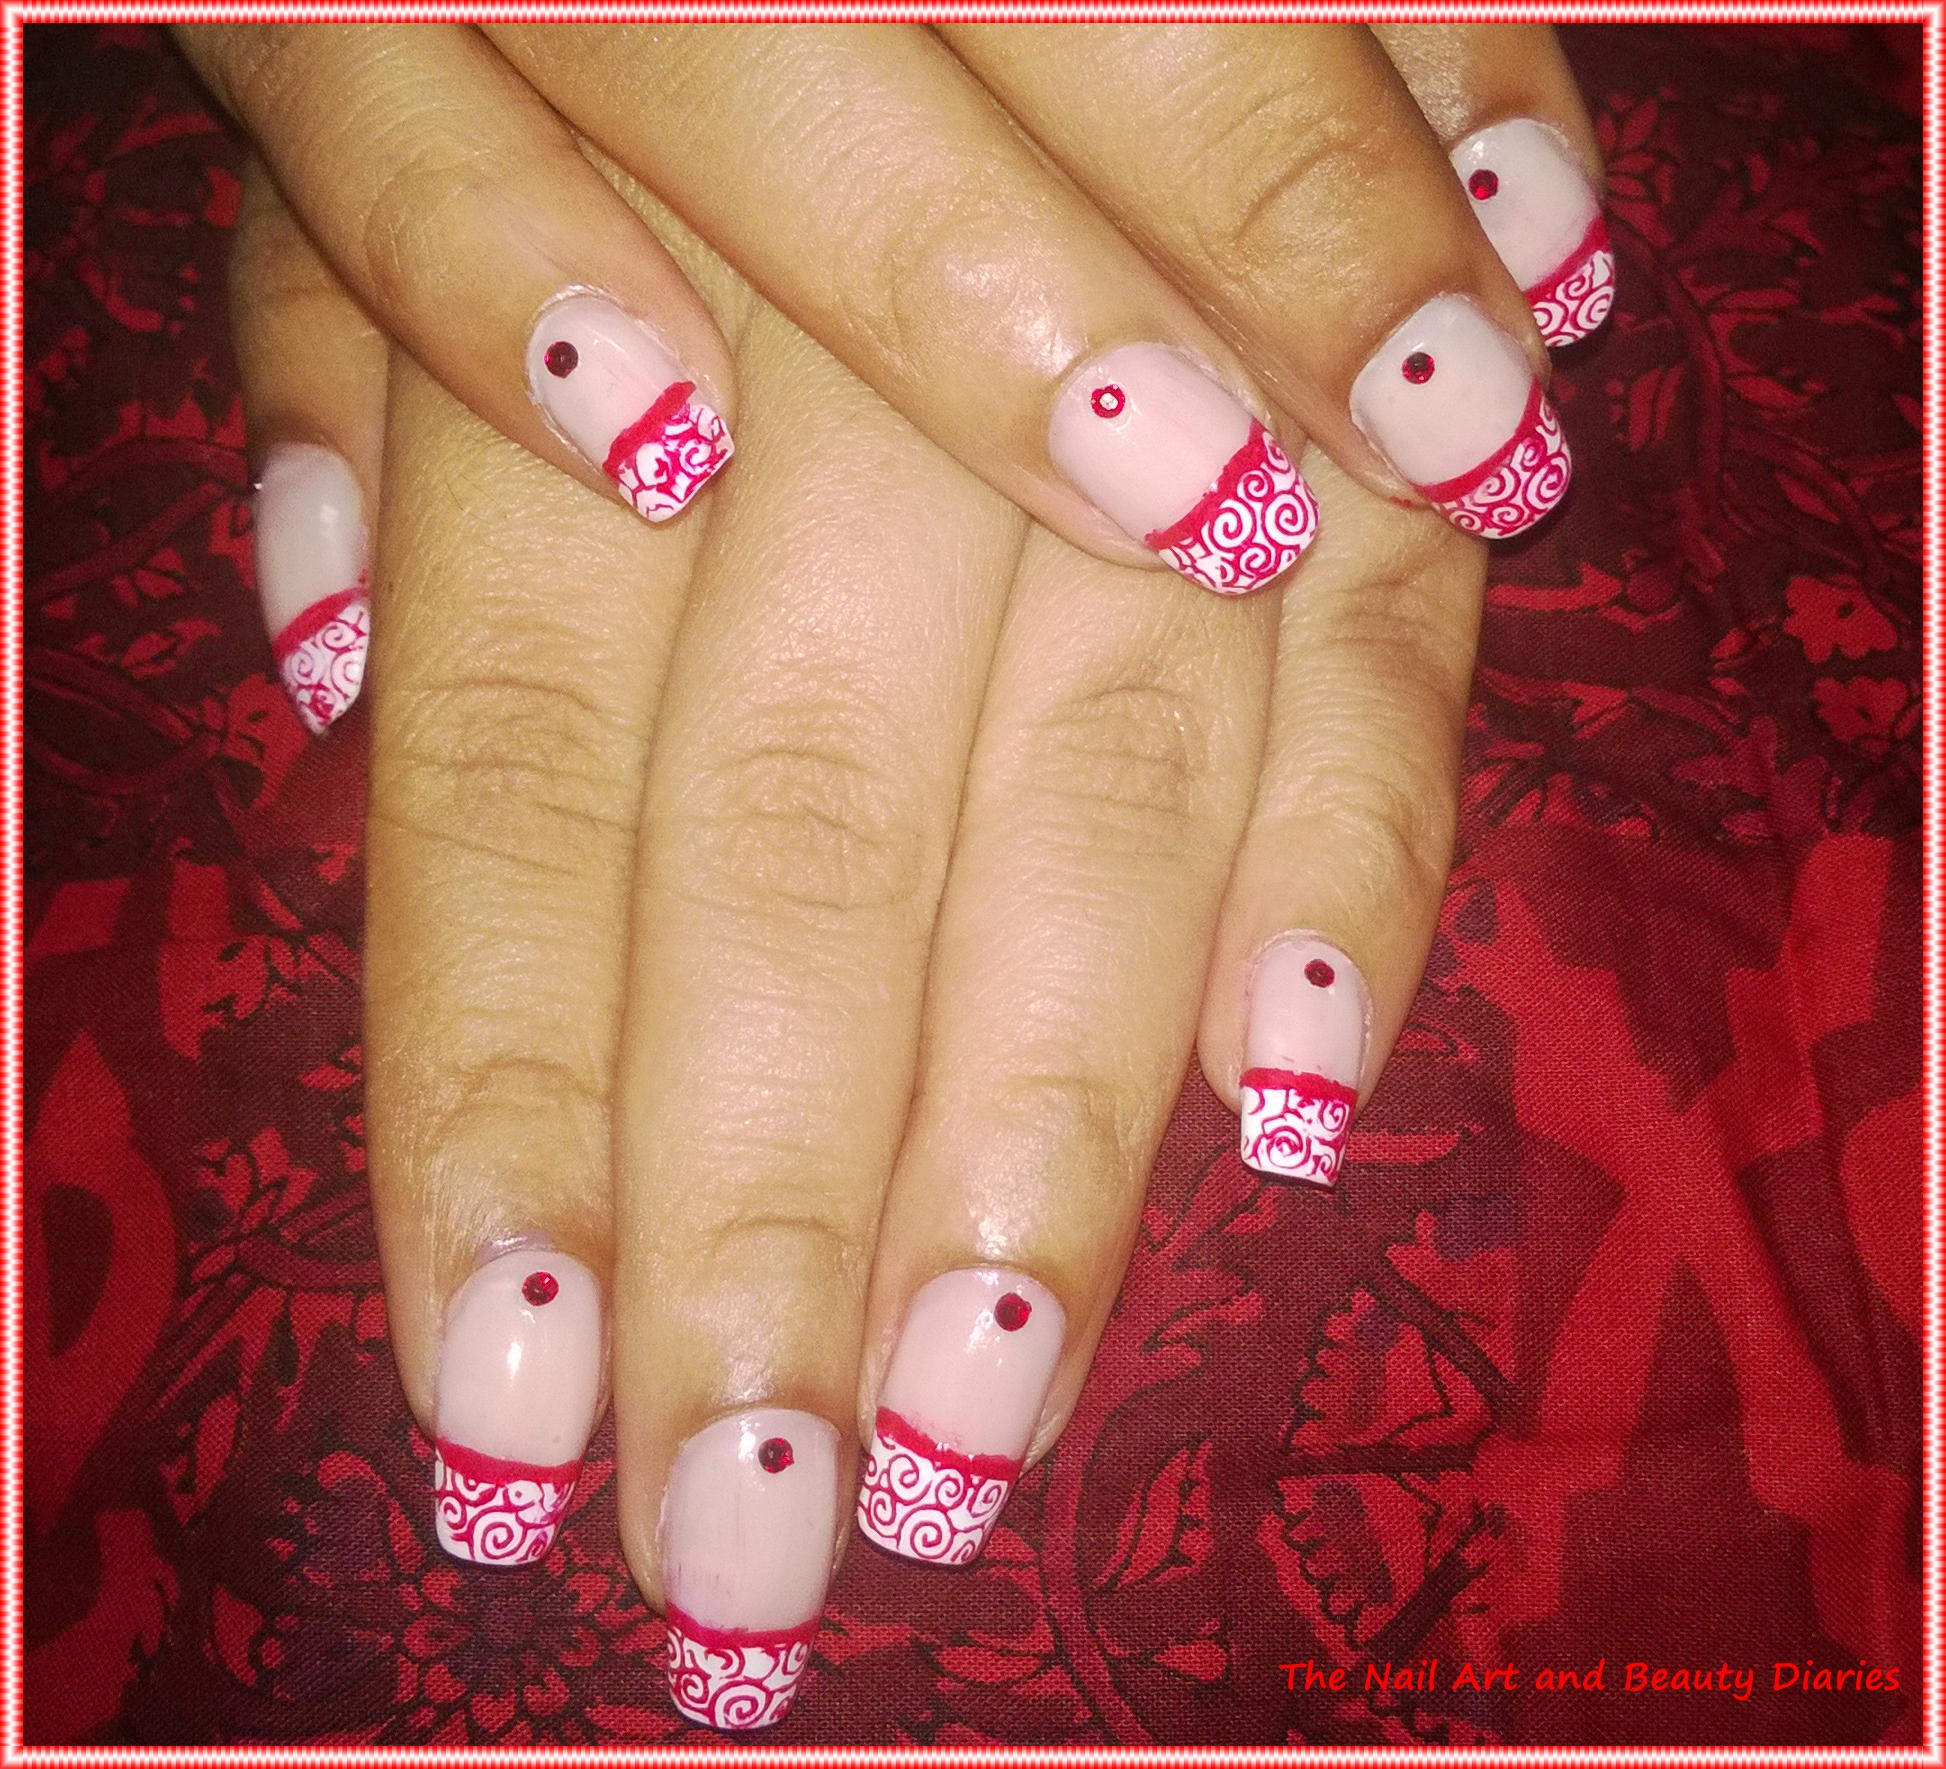 Pics Of Nail Art: The Nail Art And Beauty Diaries